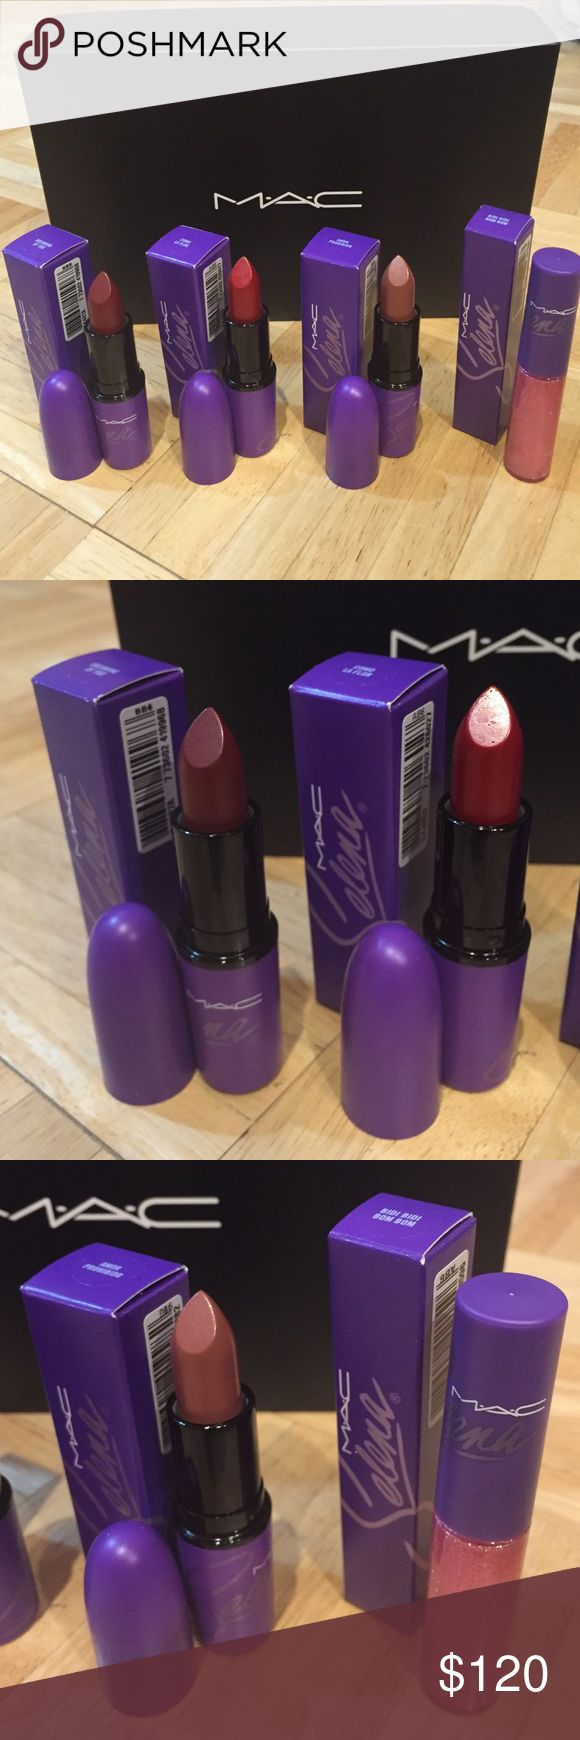 LIMITED MAC Selena lipstick and lipglass bundle MAC Selena lipstick and lipglass bundle. Brand new and unswatched!! Includes one each of Dreaming of You, Como La Flor, Amor Prohibido and Bidi Bidi Bom Bom lipglass. ❌ NO TRADES ❌ MAC Cosmetics Makeup Lipstick